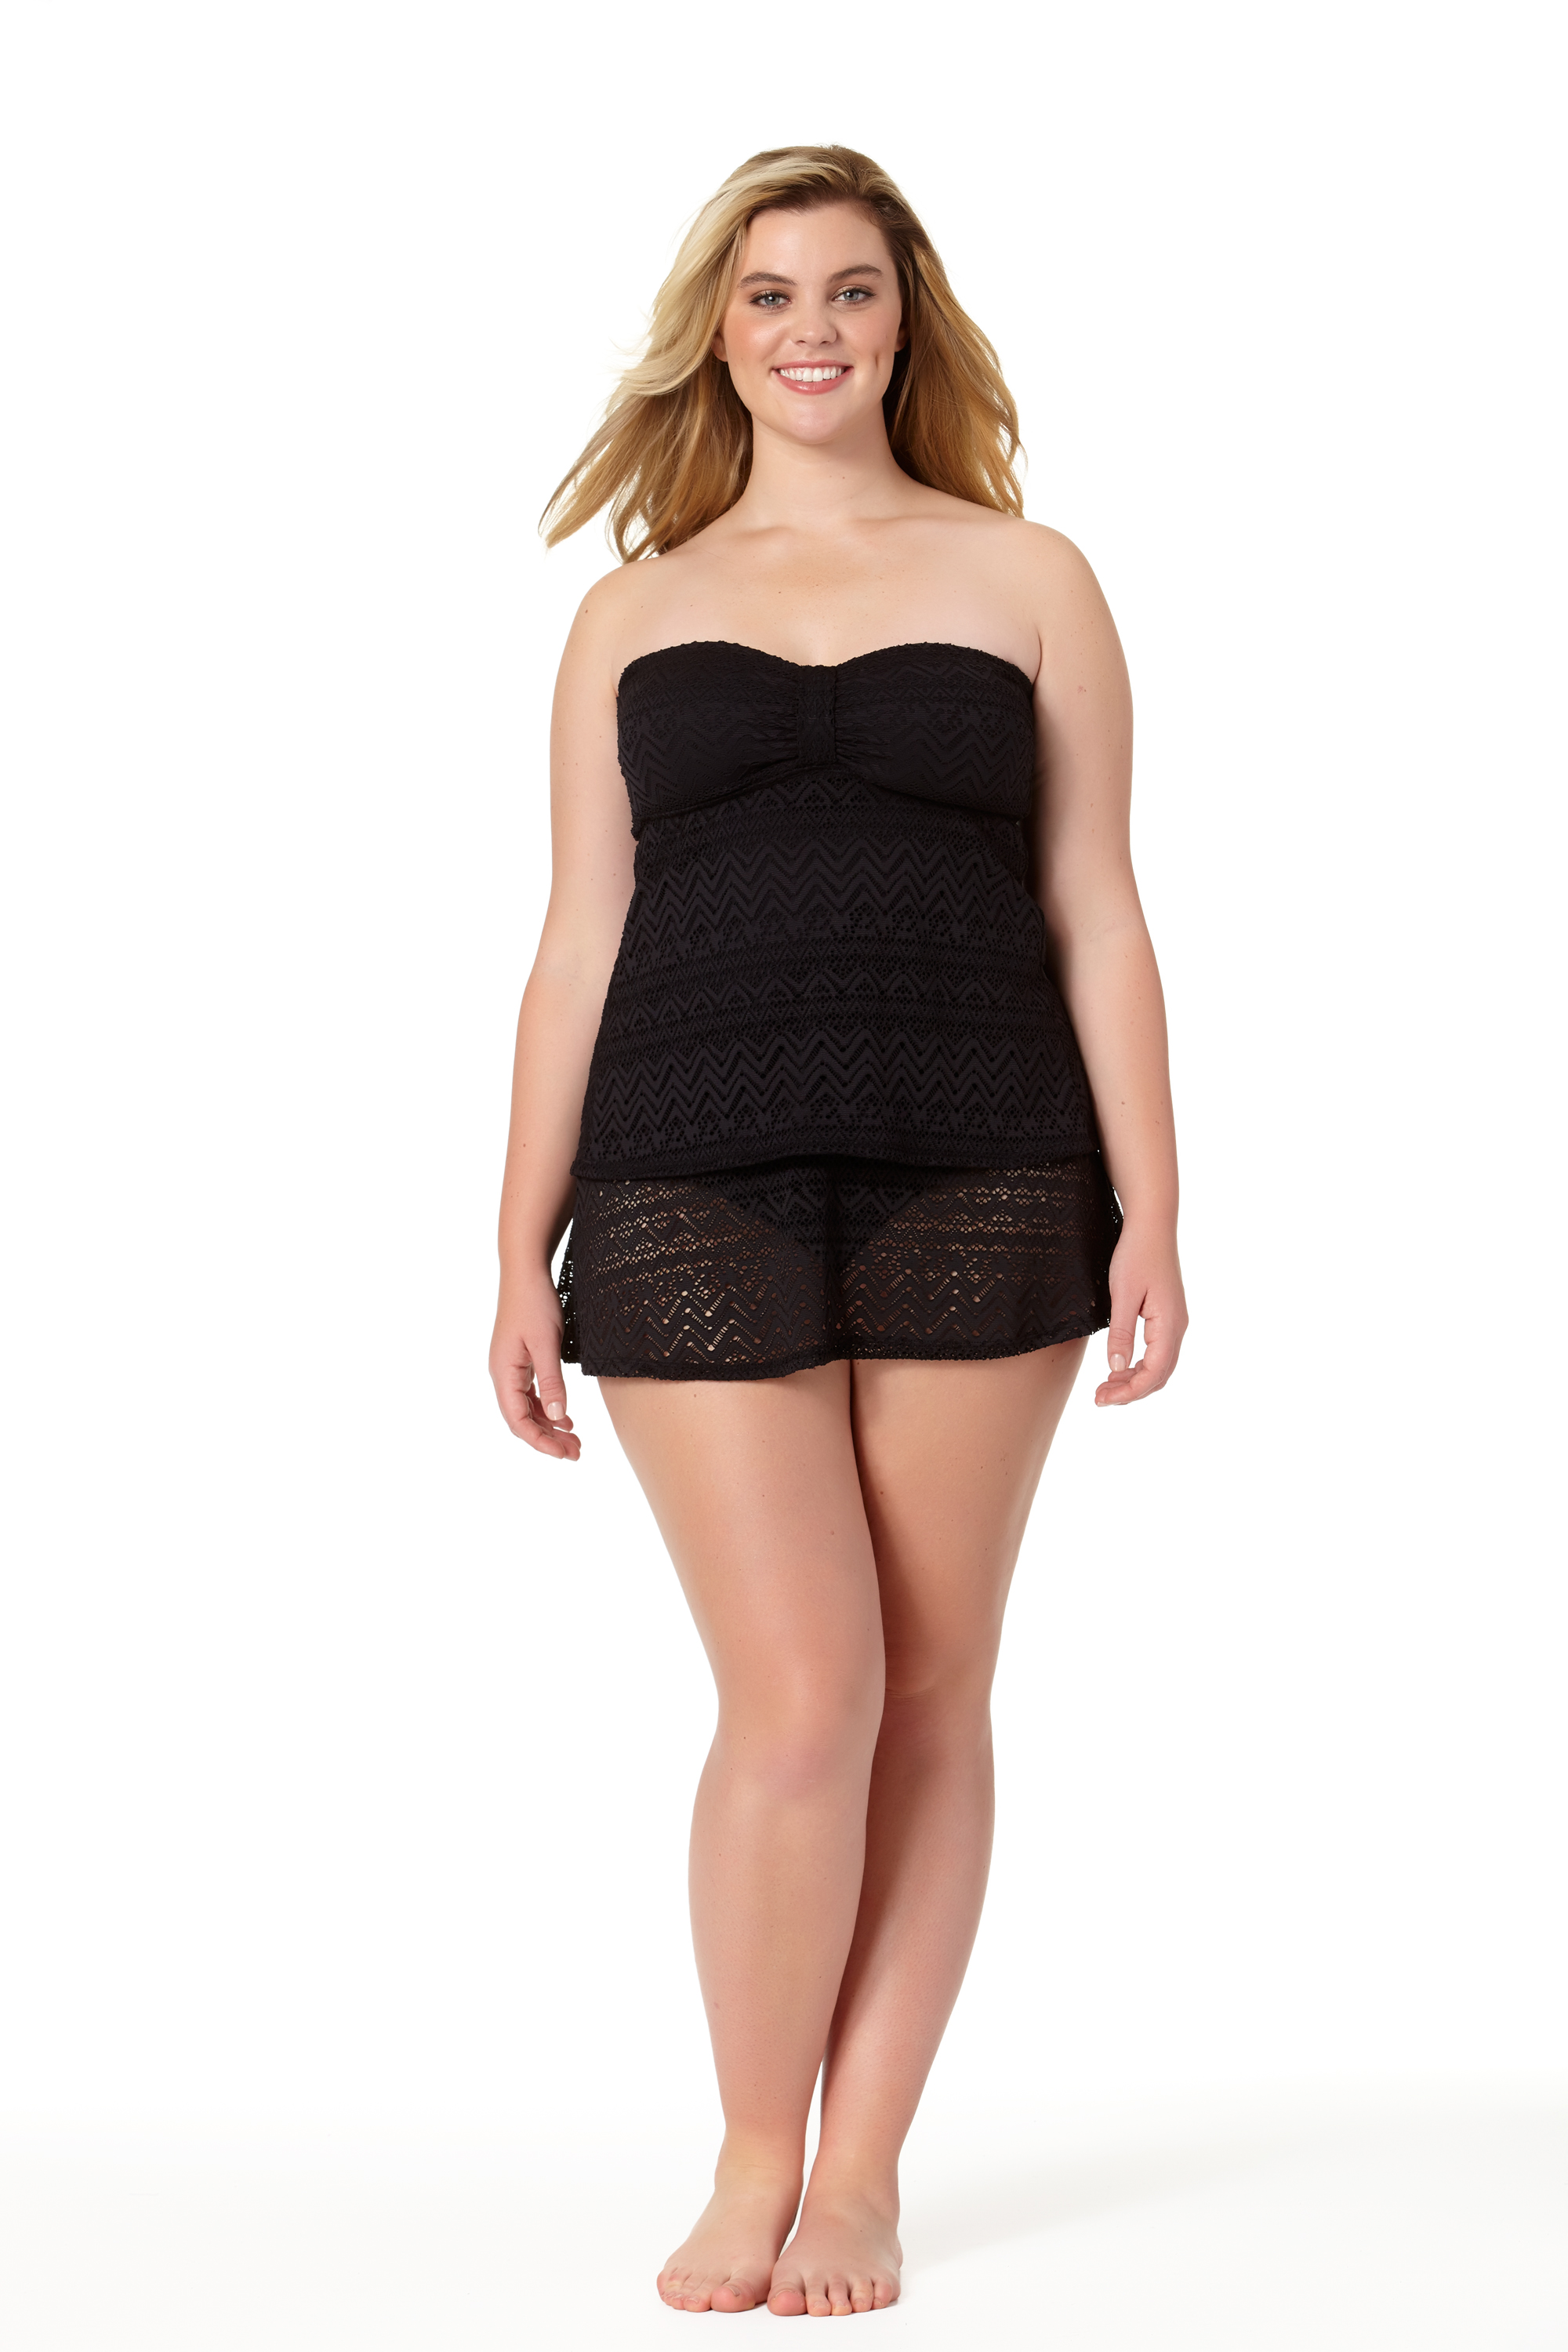 STYLE #CTP17411T /CTP17703B - Crochet Bandini TopSOLD OUTCrochet Skirted BottomSOLD OUT